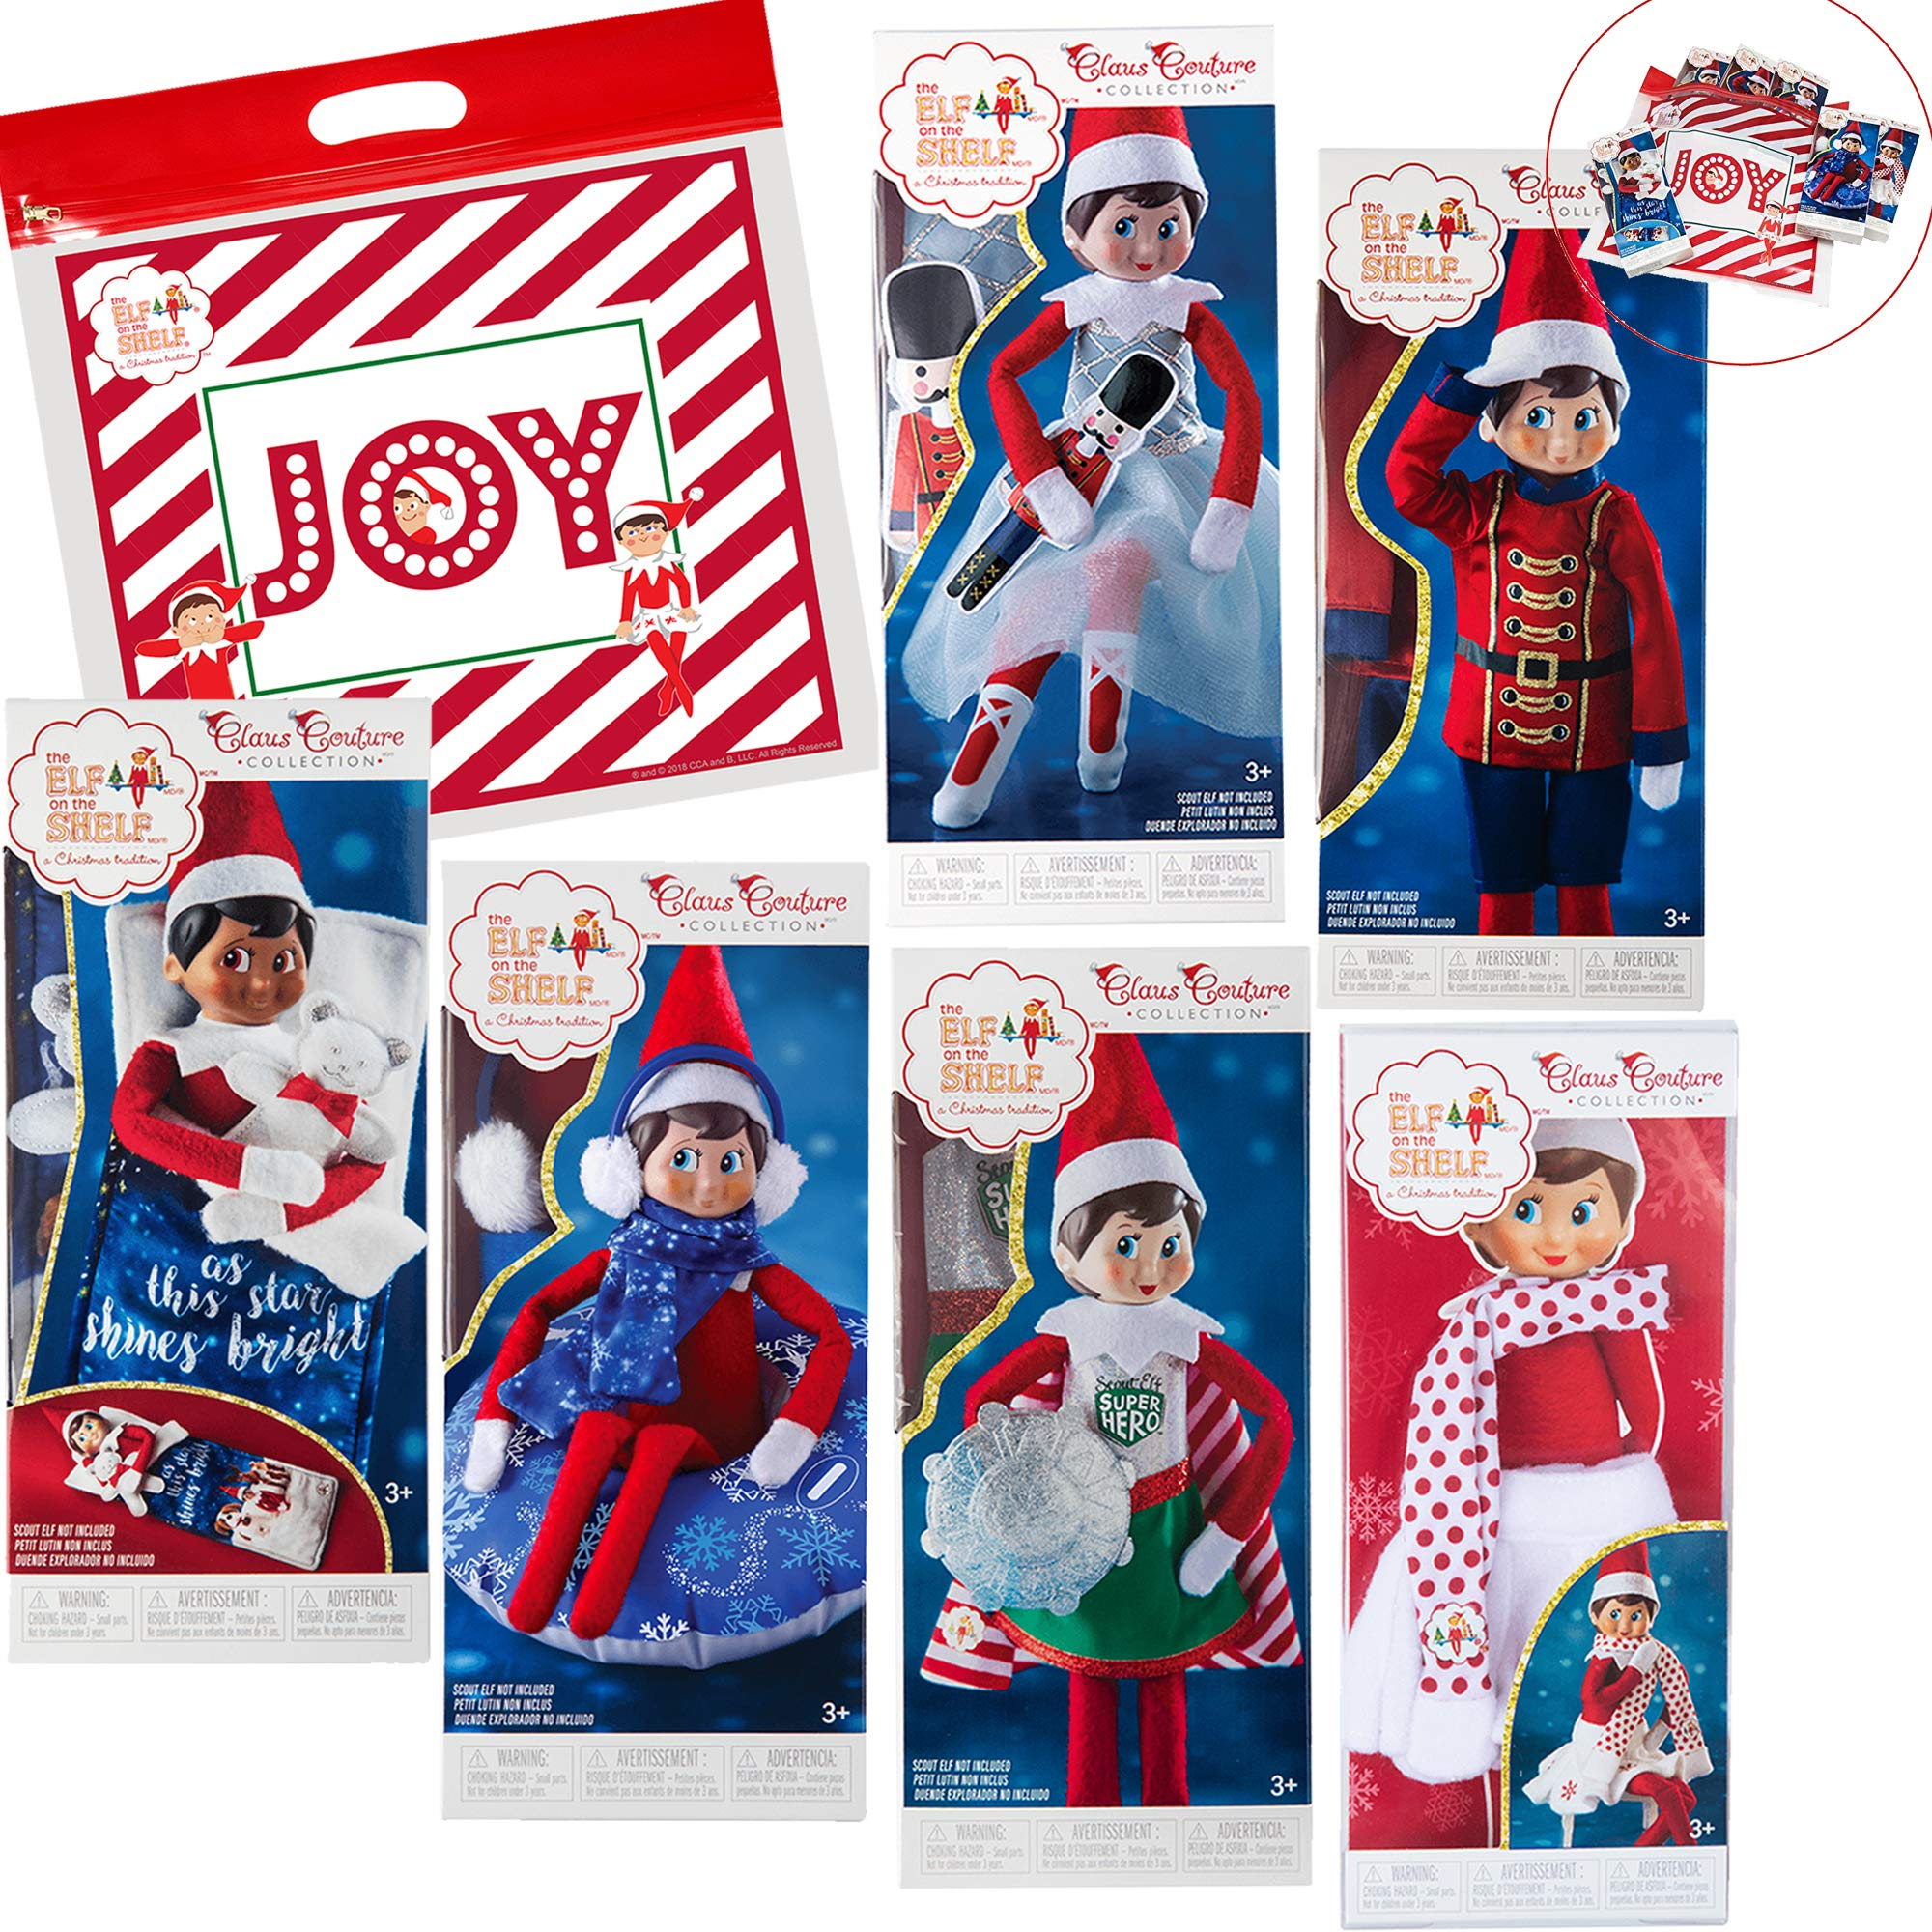 Elf on The Shelf Claus Couture All New 2018 Ultimate Scout Elf Accessories Pack, Set of 6 with Exclusive Joy Travel Bag by The Elf on the Shelf